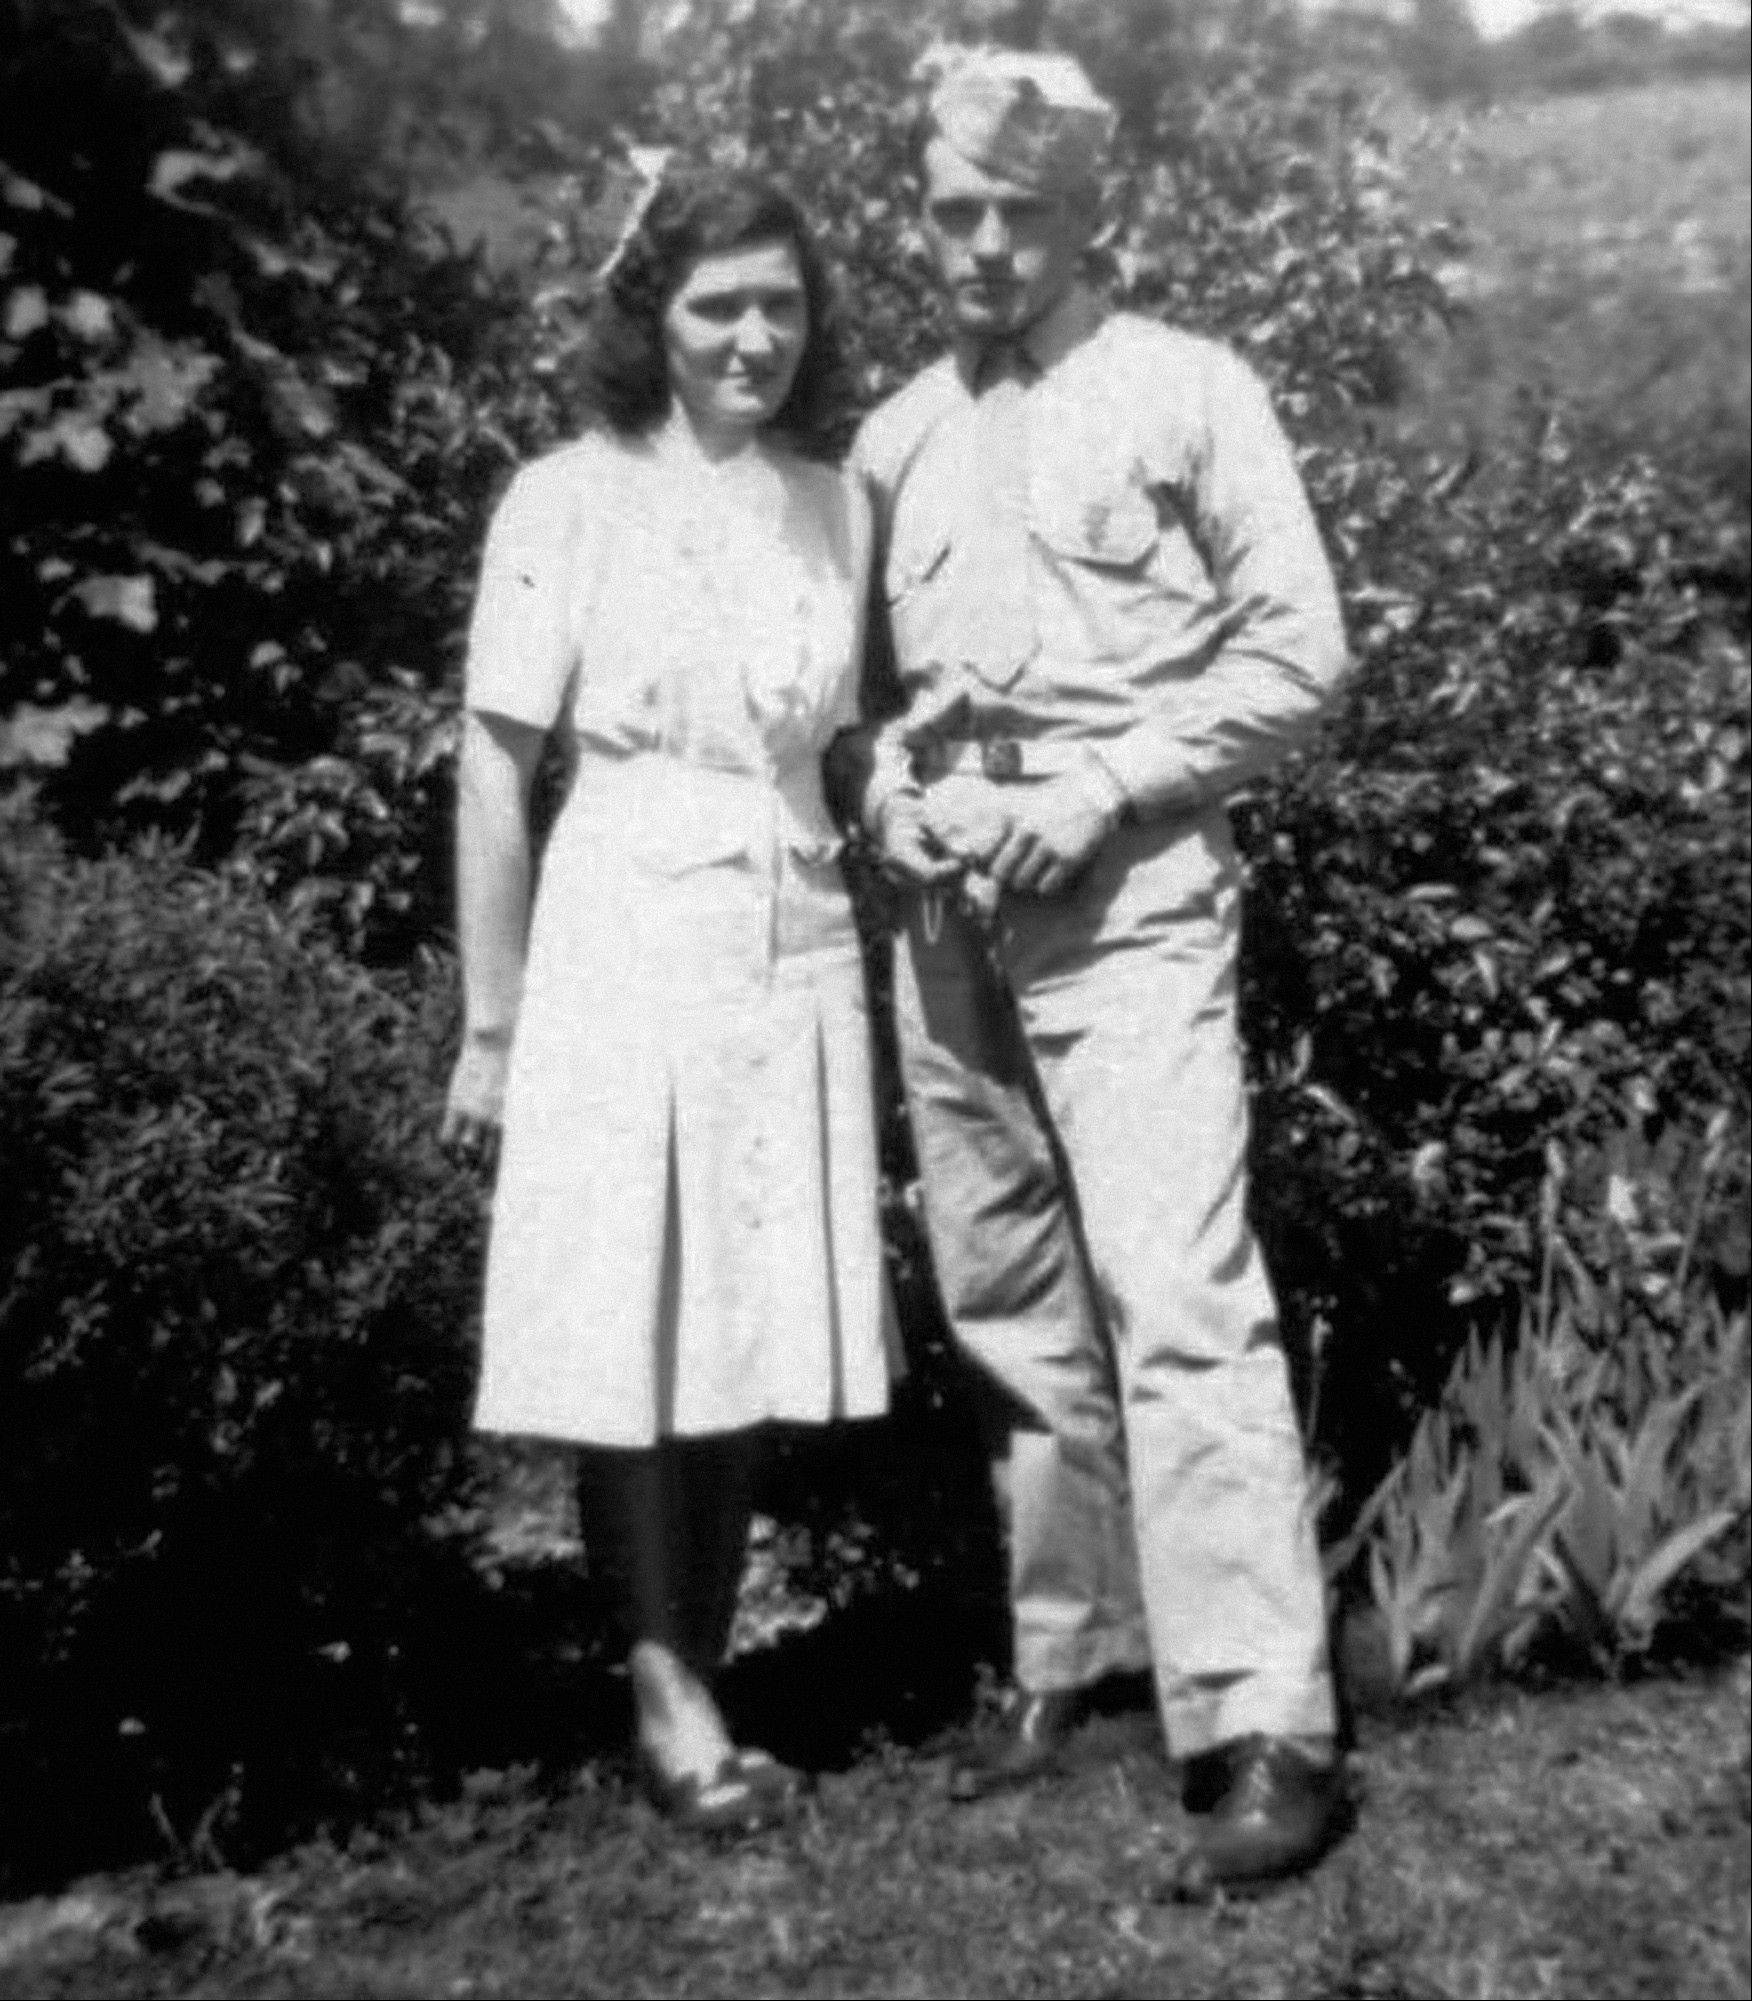 This 1943 photo provided by the family shows James Capps with his wife, Hazel in North Carolina.